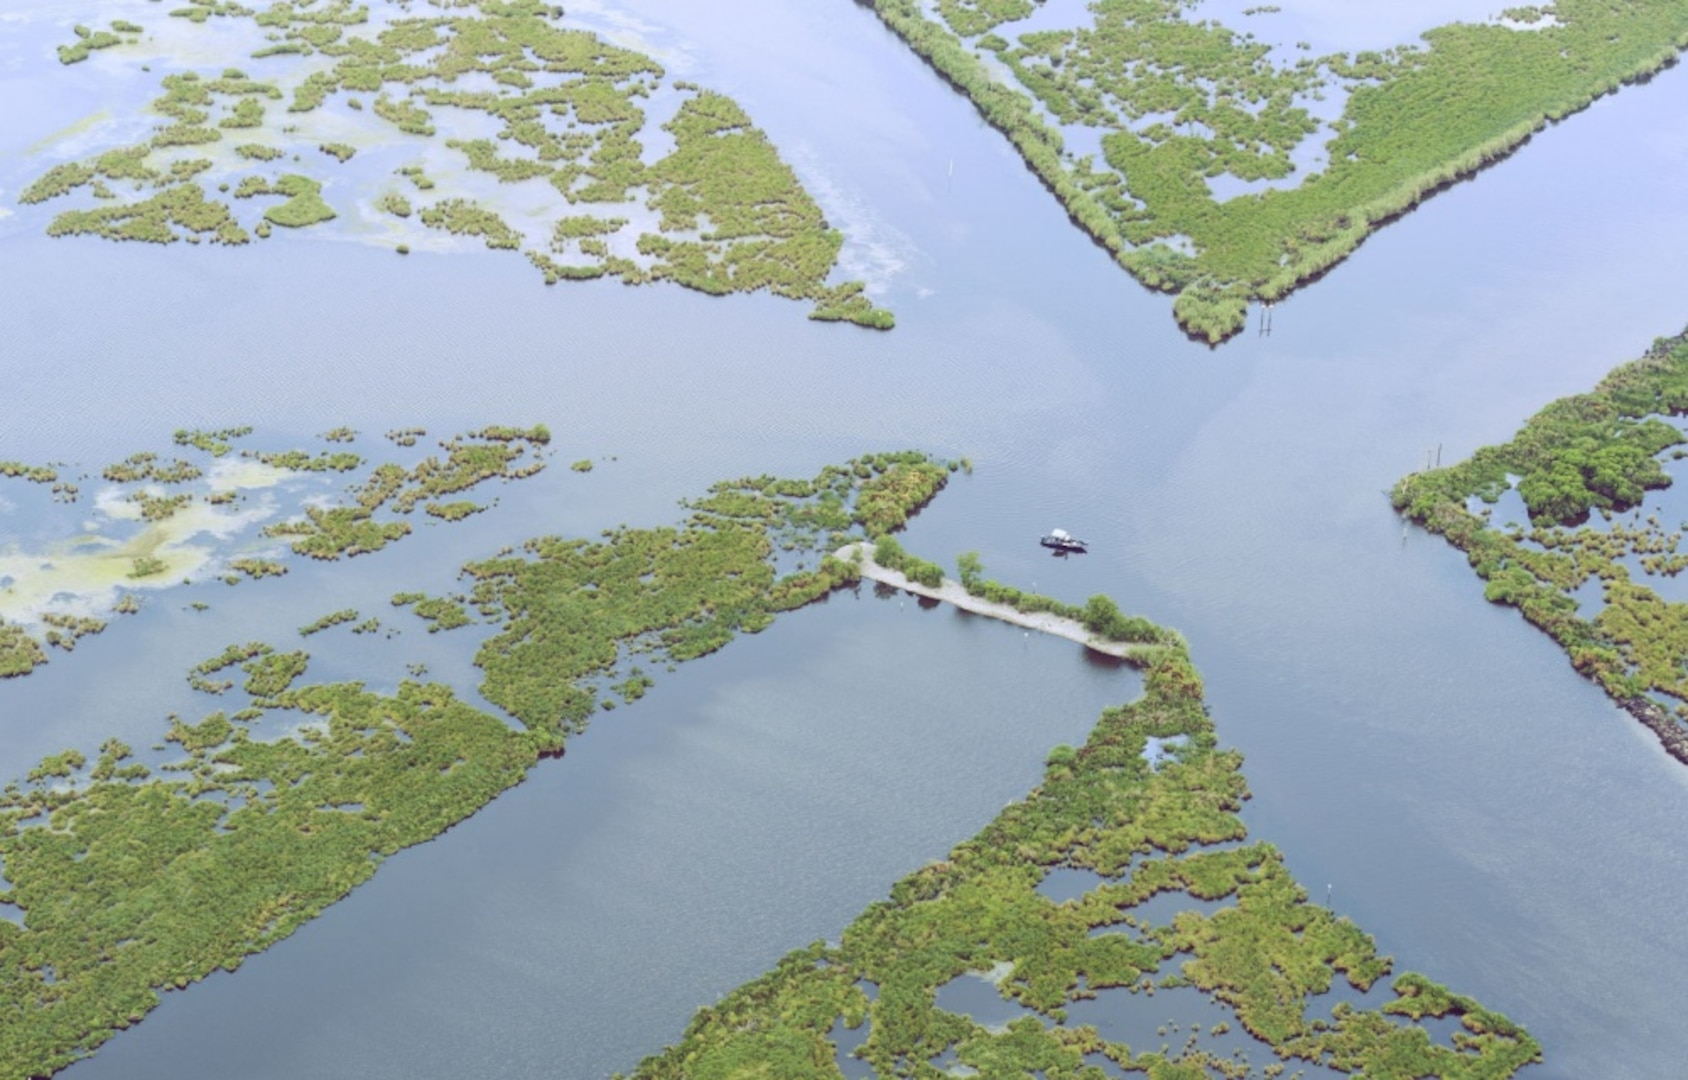 An aerial shot of the tidal flats and marshlands in southern Louisiana, taken June 25, provides an idea of just how difficult oil clean-up operations would be in such a shallow and densely vegetated environ. Coast Guard members and civilian boat crews are working to boom off inlets to these areas in order to prevent contamination of one of the Gulf Coast's most sensitive ecosystems.